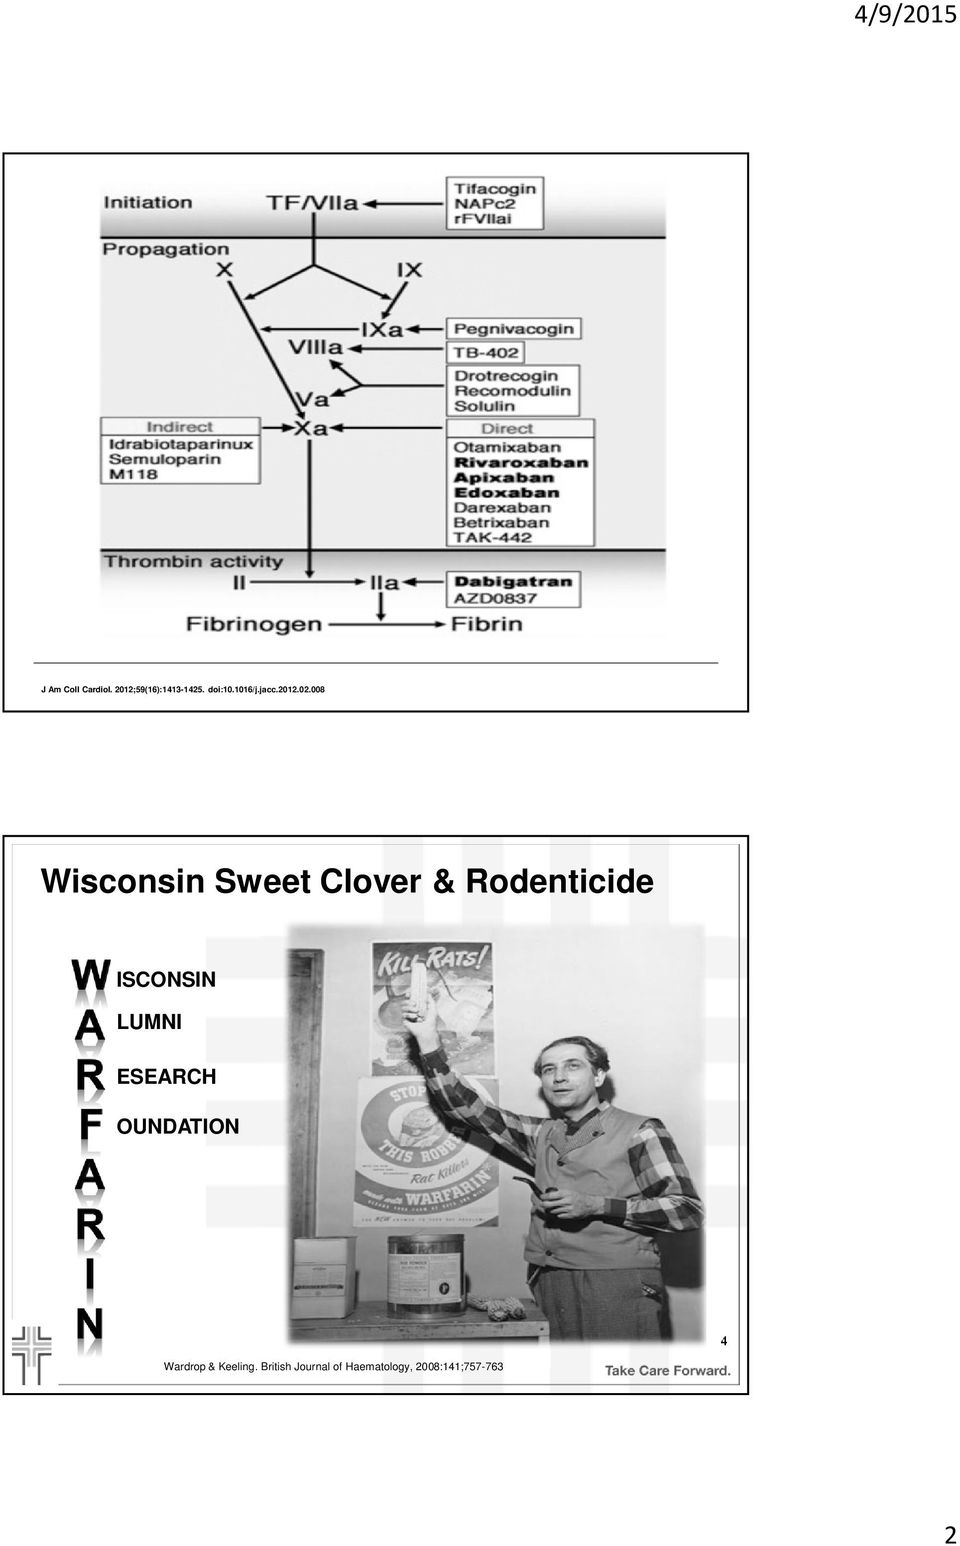 008 Wisconsin Sweet Clover & Rodenticide ISCONSIN